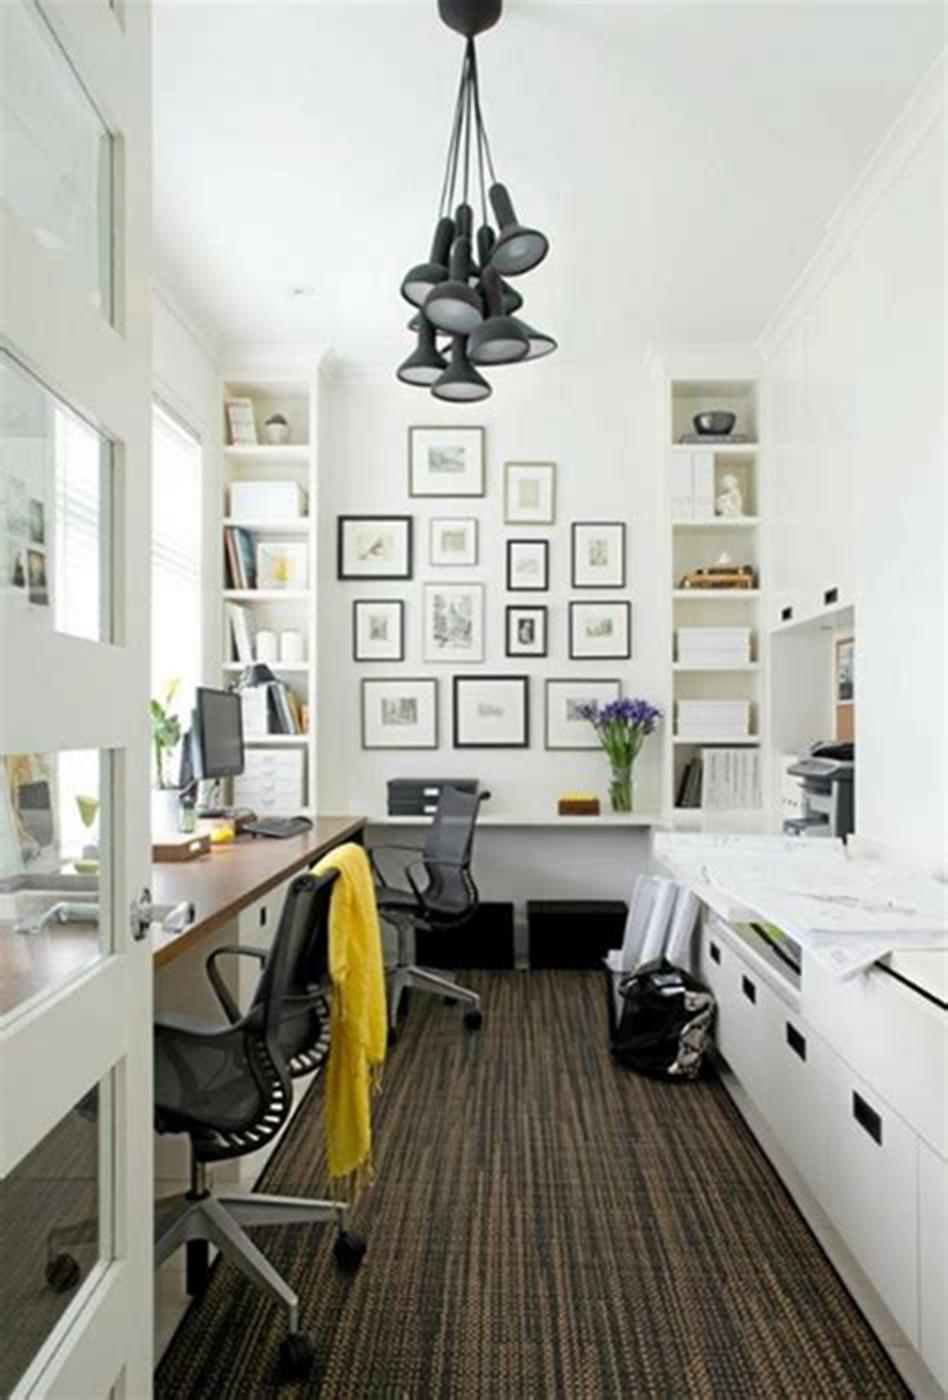 50 Best Small Space Office Decorating Ideas On a Budget 2019 9